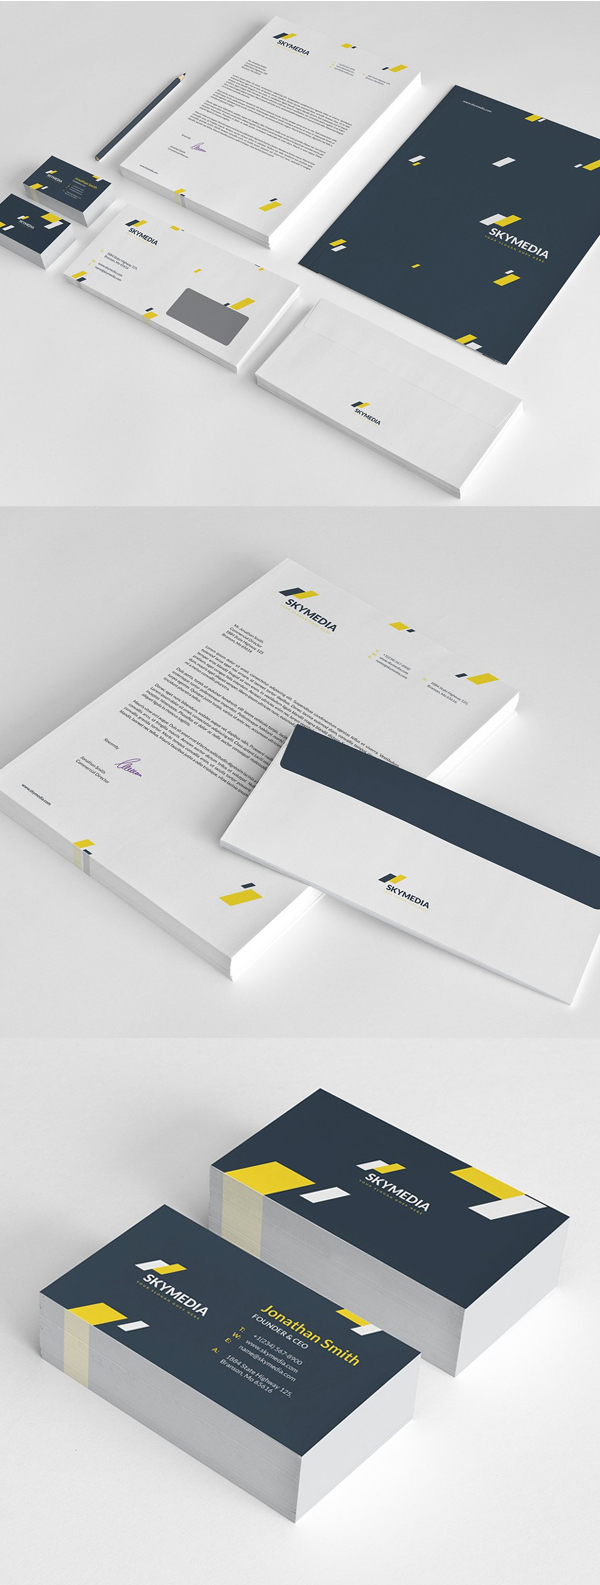 Modern Business Branding / Stationery Templates Design - 2